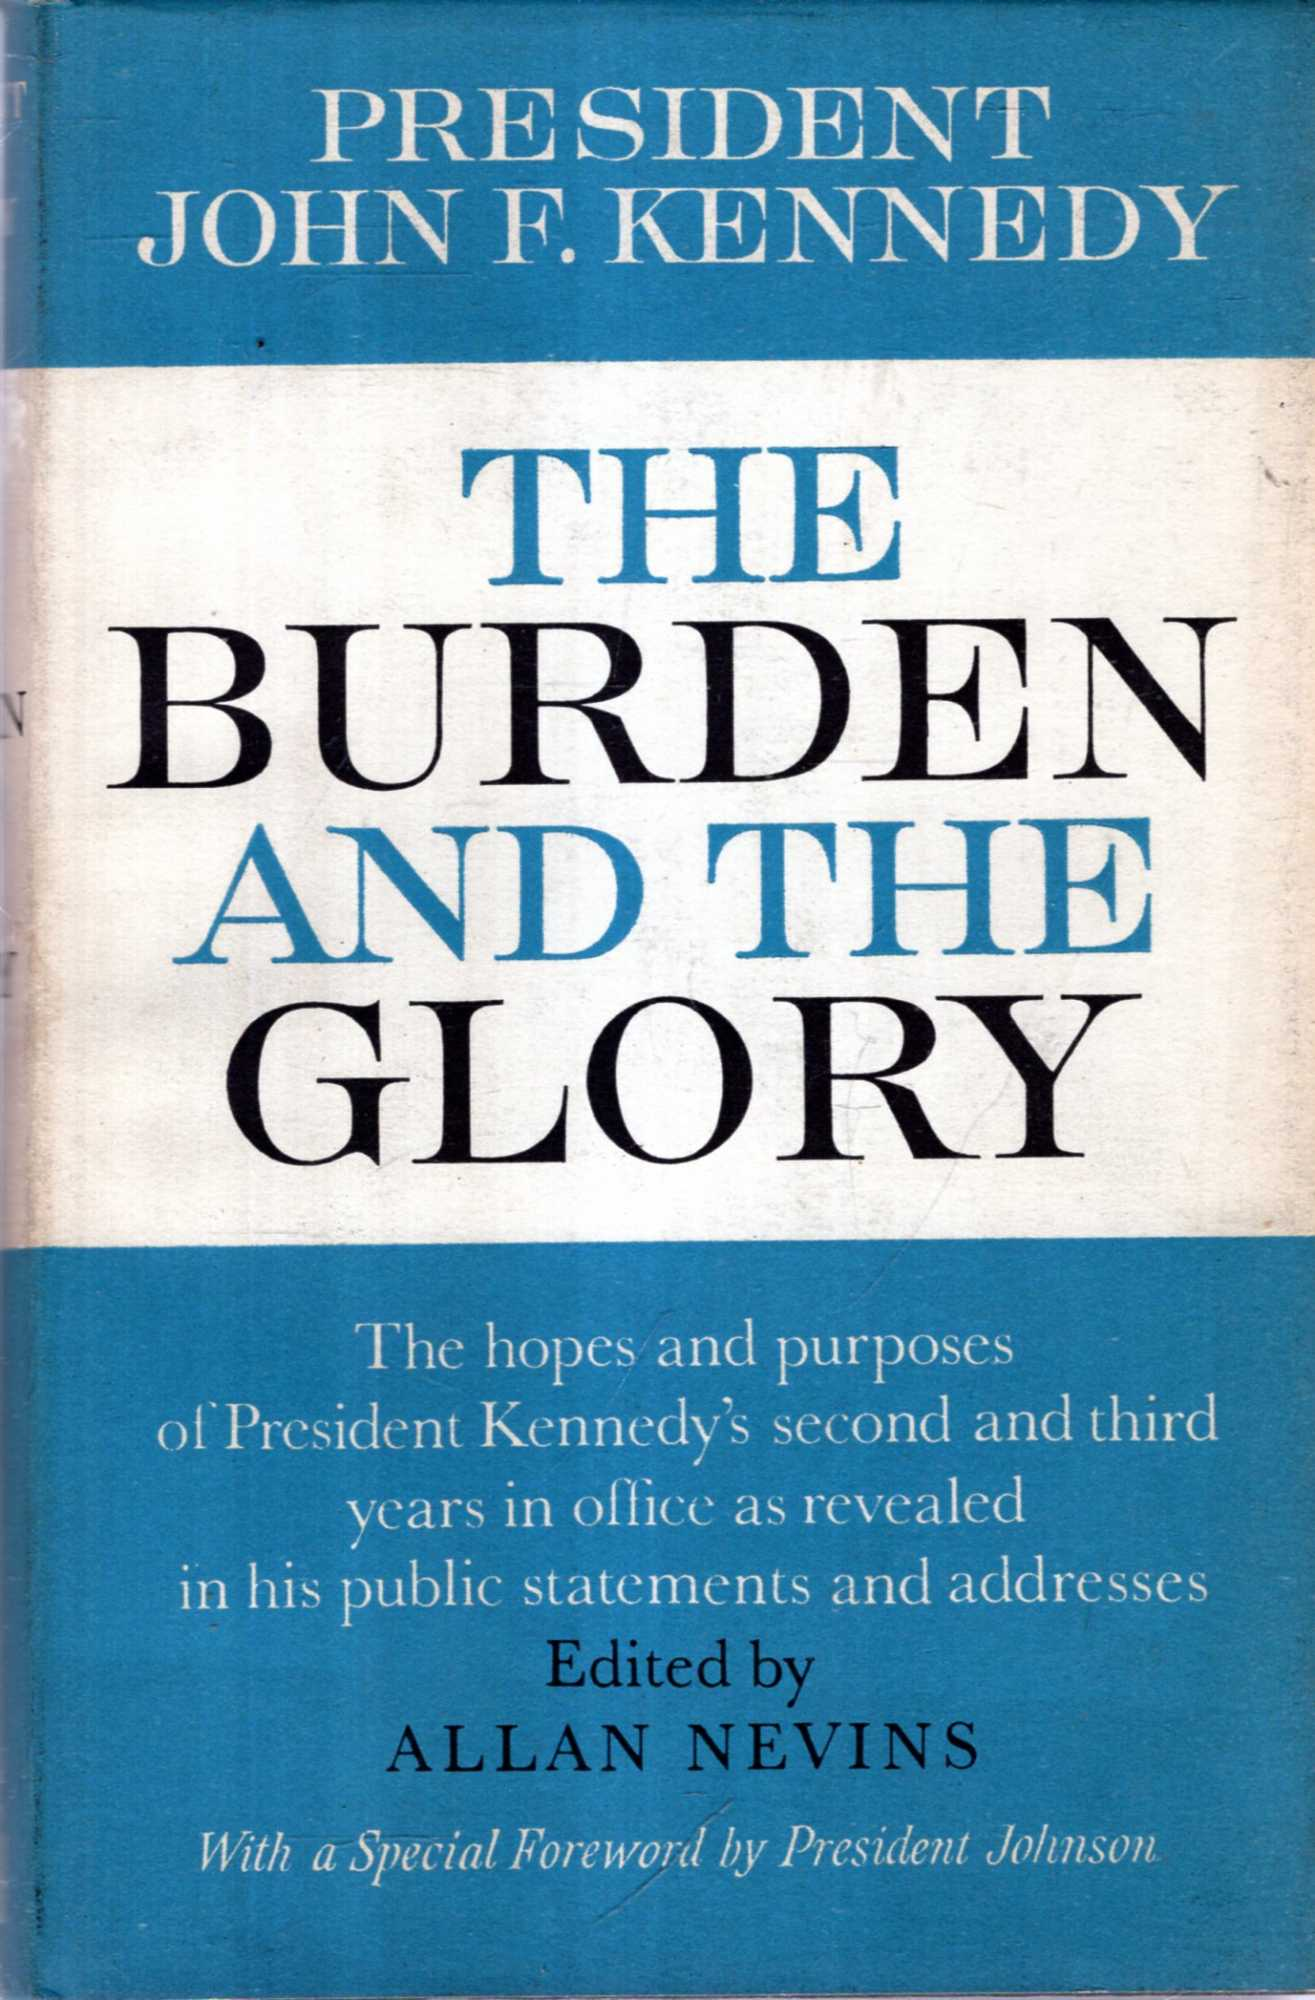 Image for President John F Kennedy : The Burden and the Glory